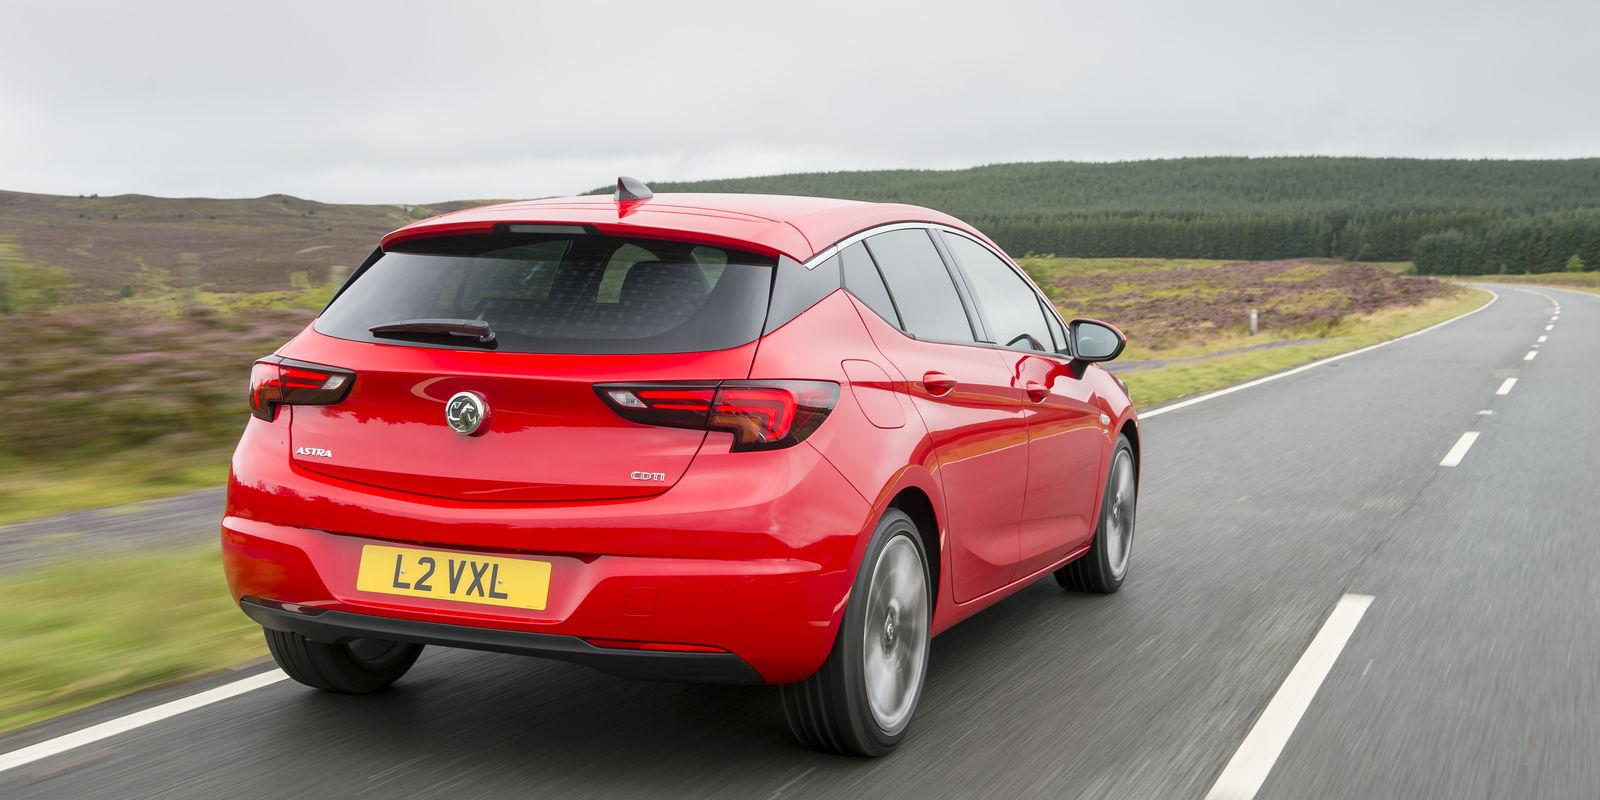 Astra deals uk pinball pro coupon new vauxhall cars for sale at exchangeandmart if you are looking for a compact family car that offers both comfort and style we have a range of new fandeluxe Choice Image